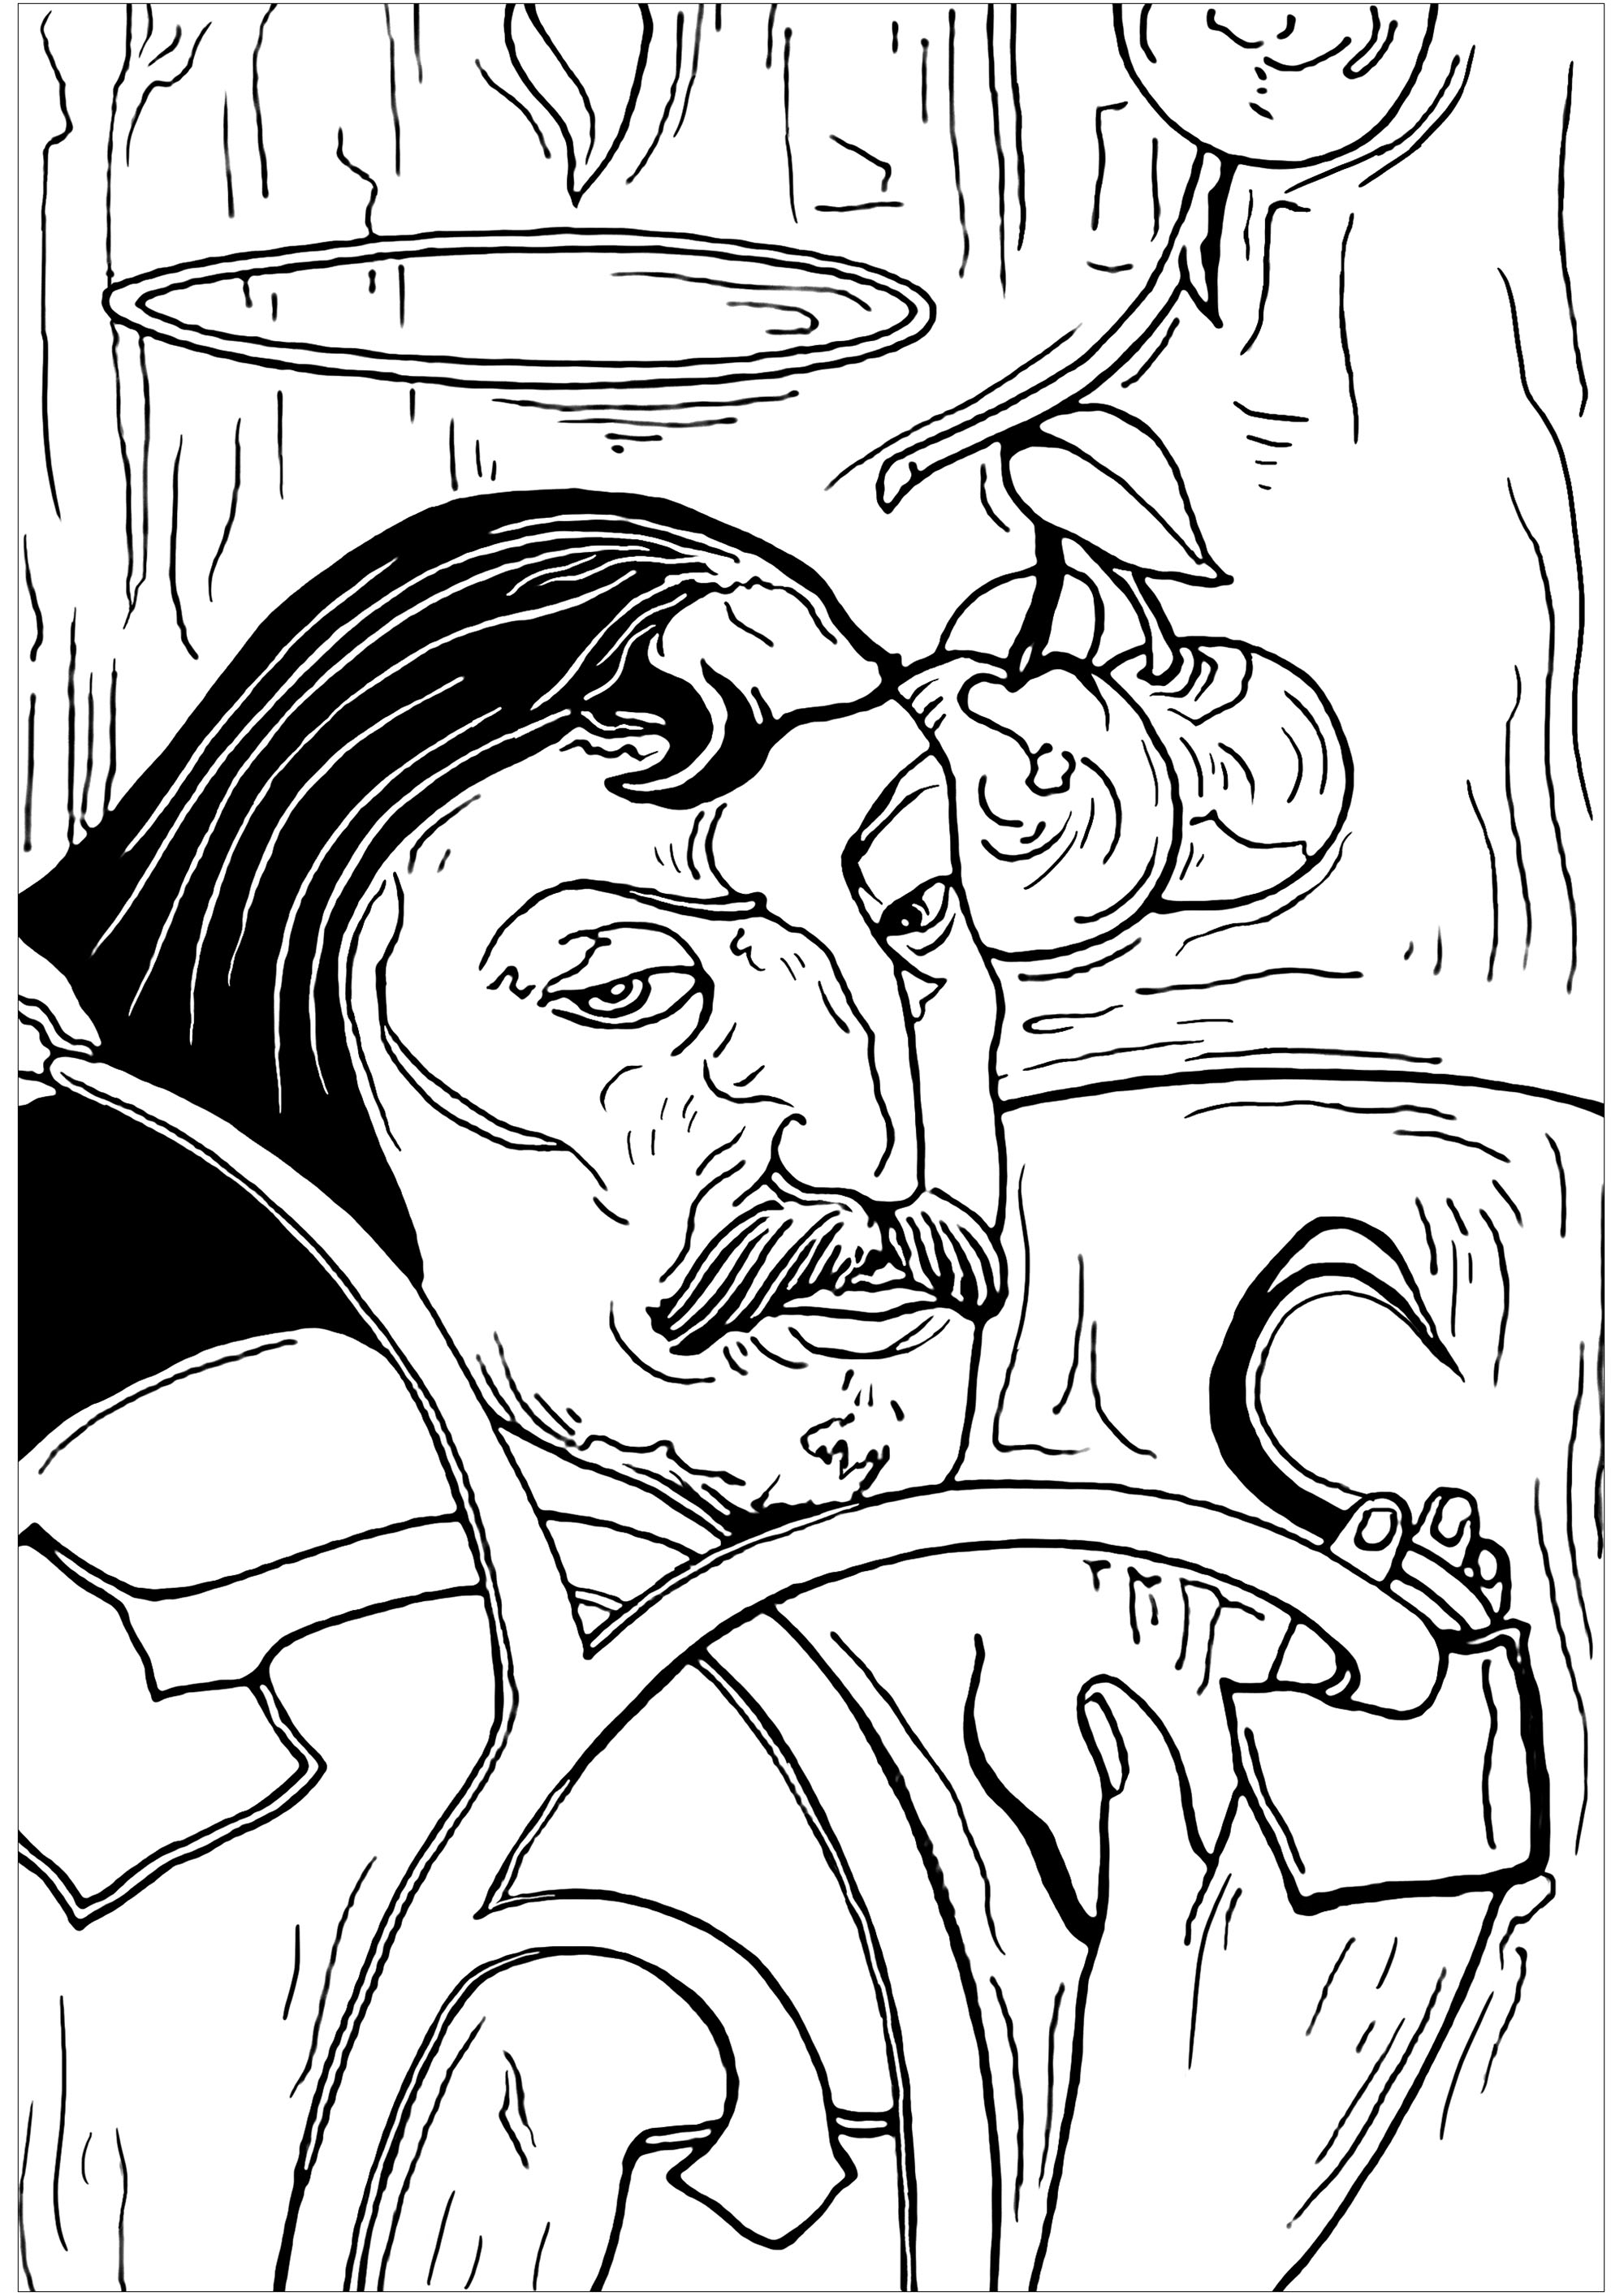 Paul Coloring Pages Paul Gauguin Self Portrait With Halo Masterpieces Adult Coloring